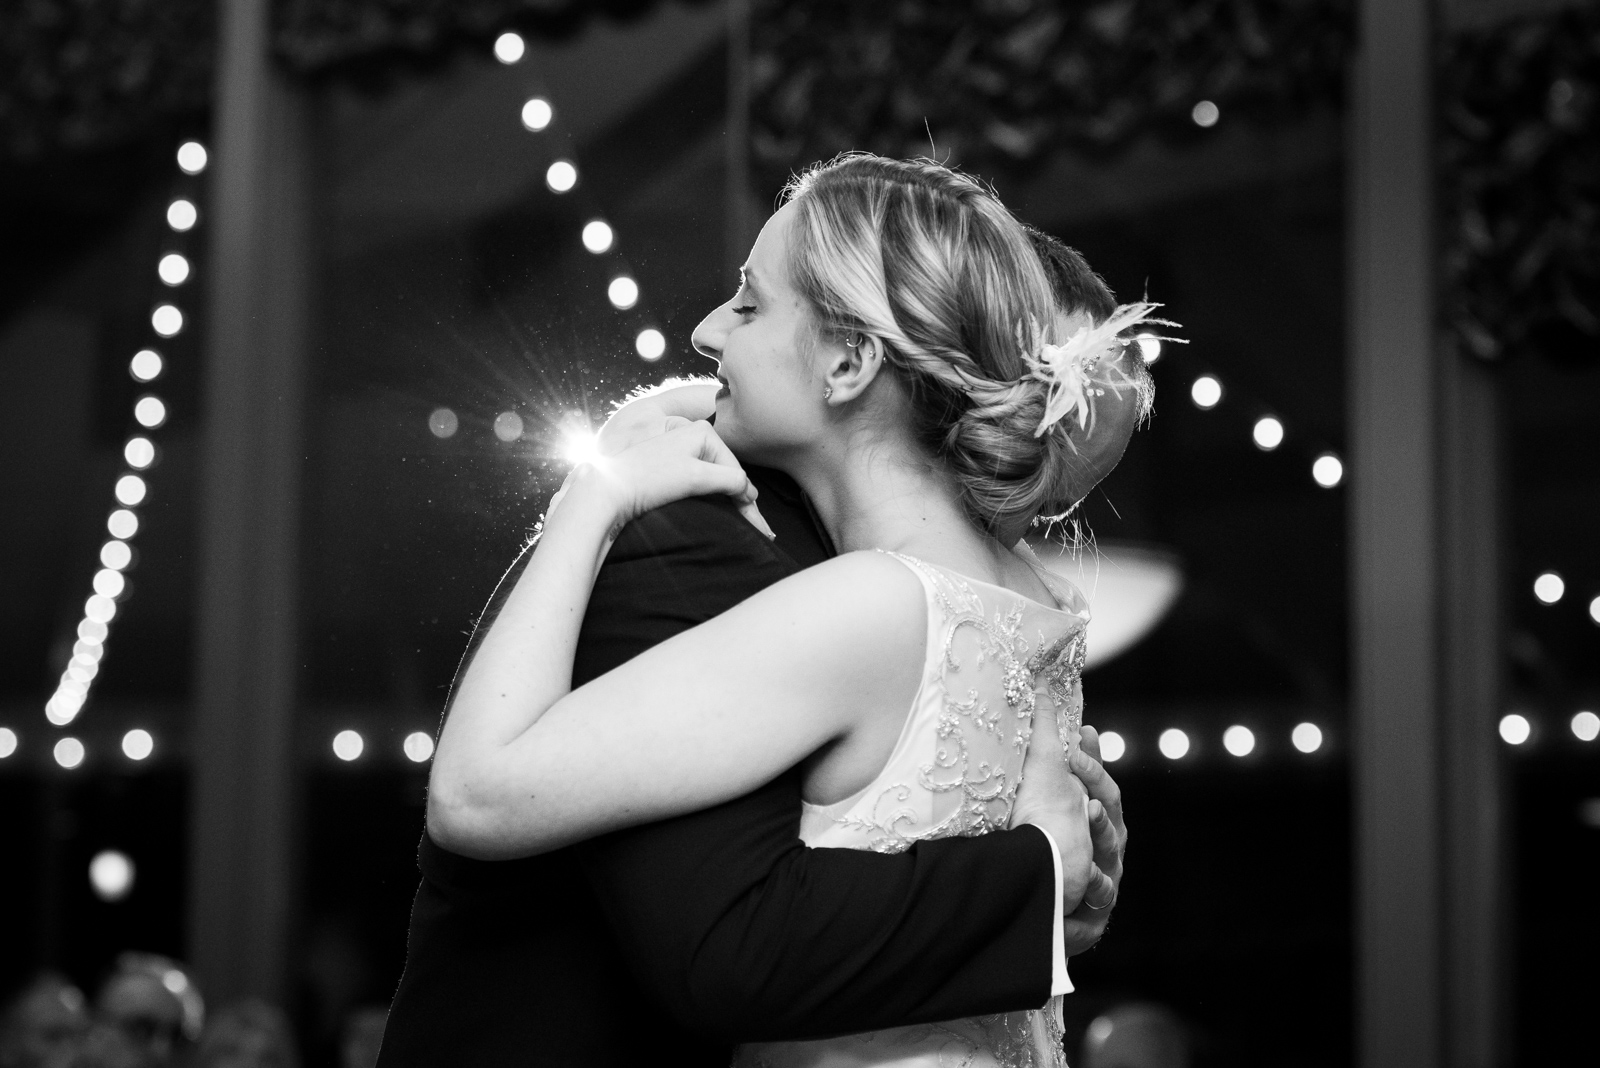 first-dance-Scranton-clarks-summit-wedding-glen-oaks-contry-club-wedding-photographer-steven-serge-6.jpg